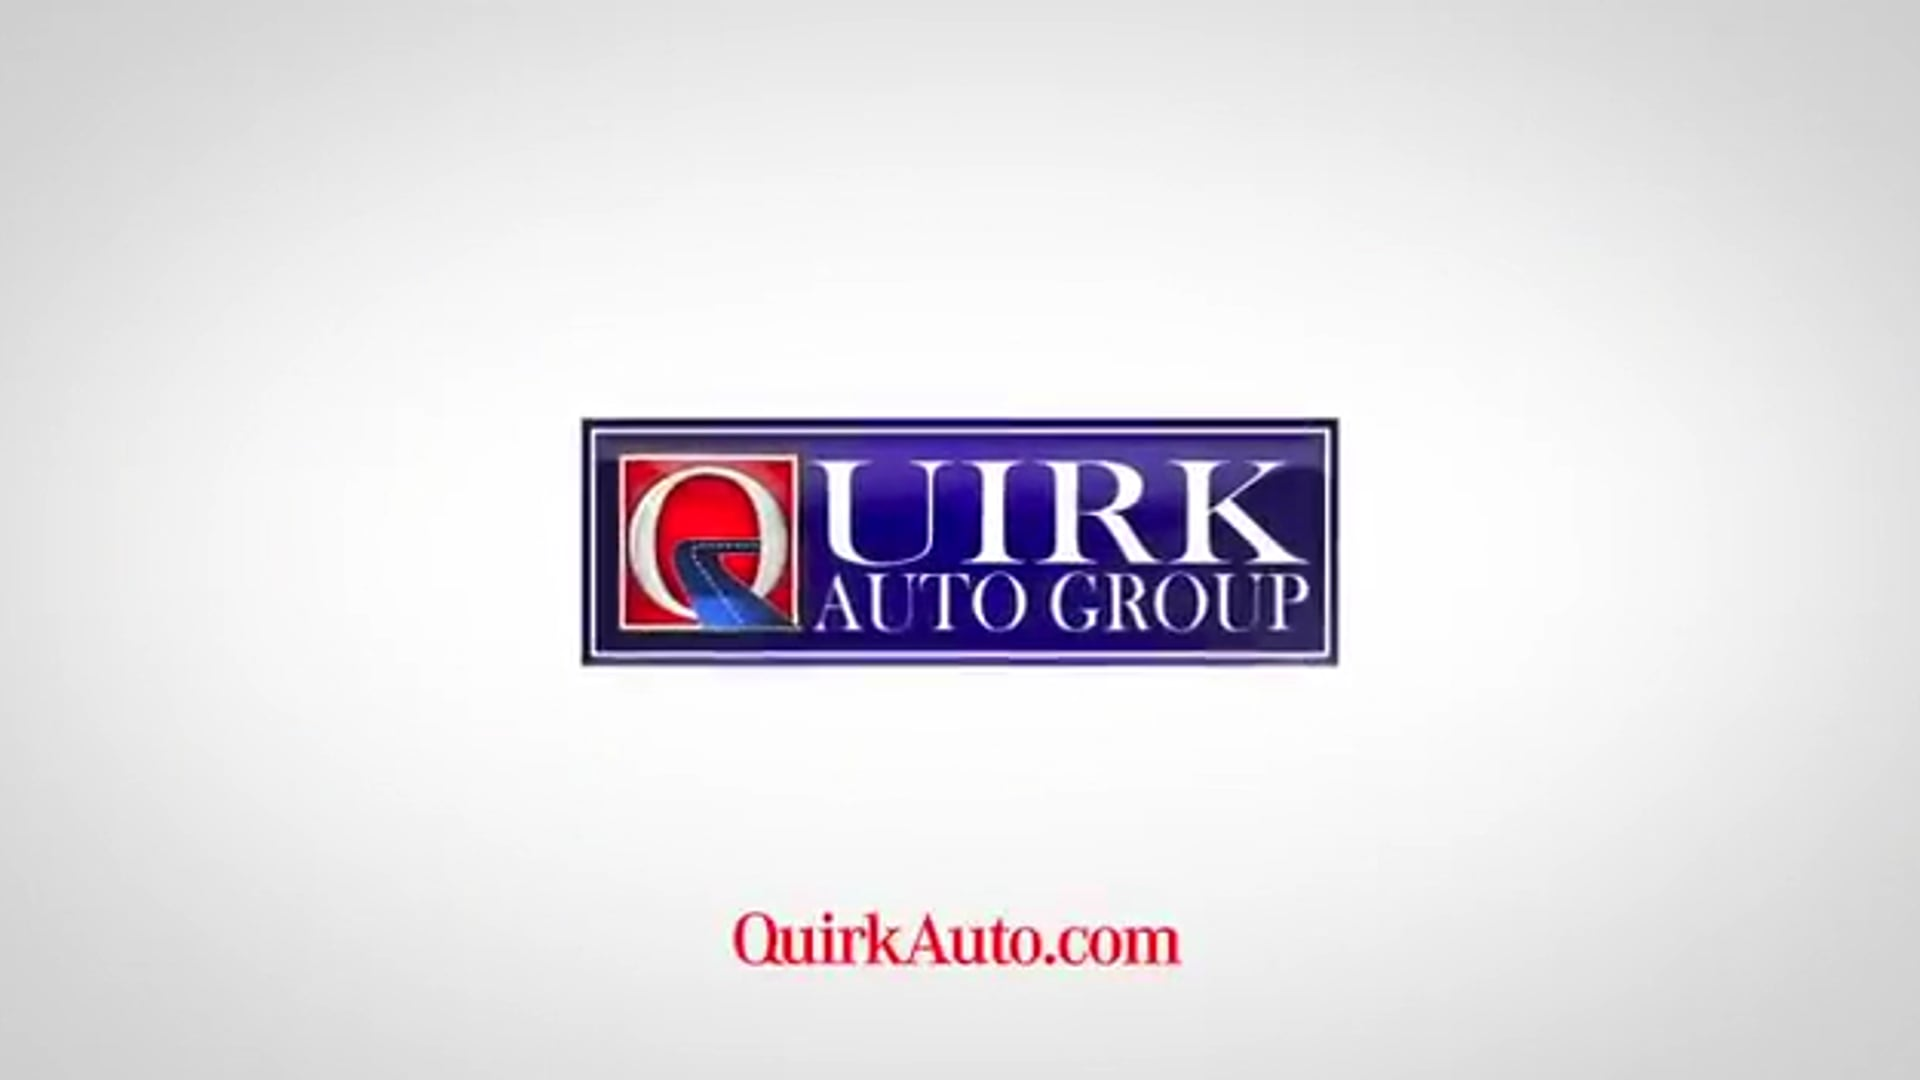 Quirk Auto Group- It's your car- I